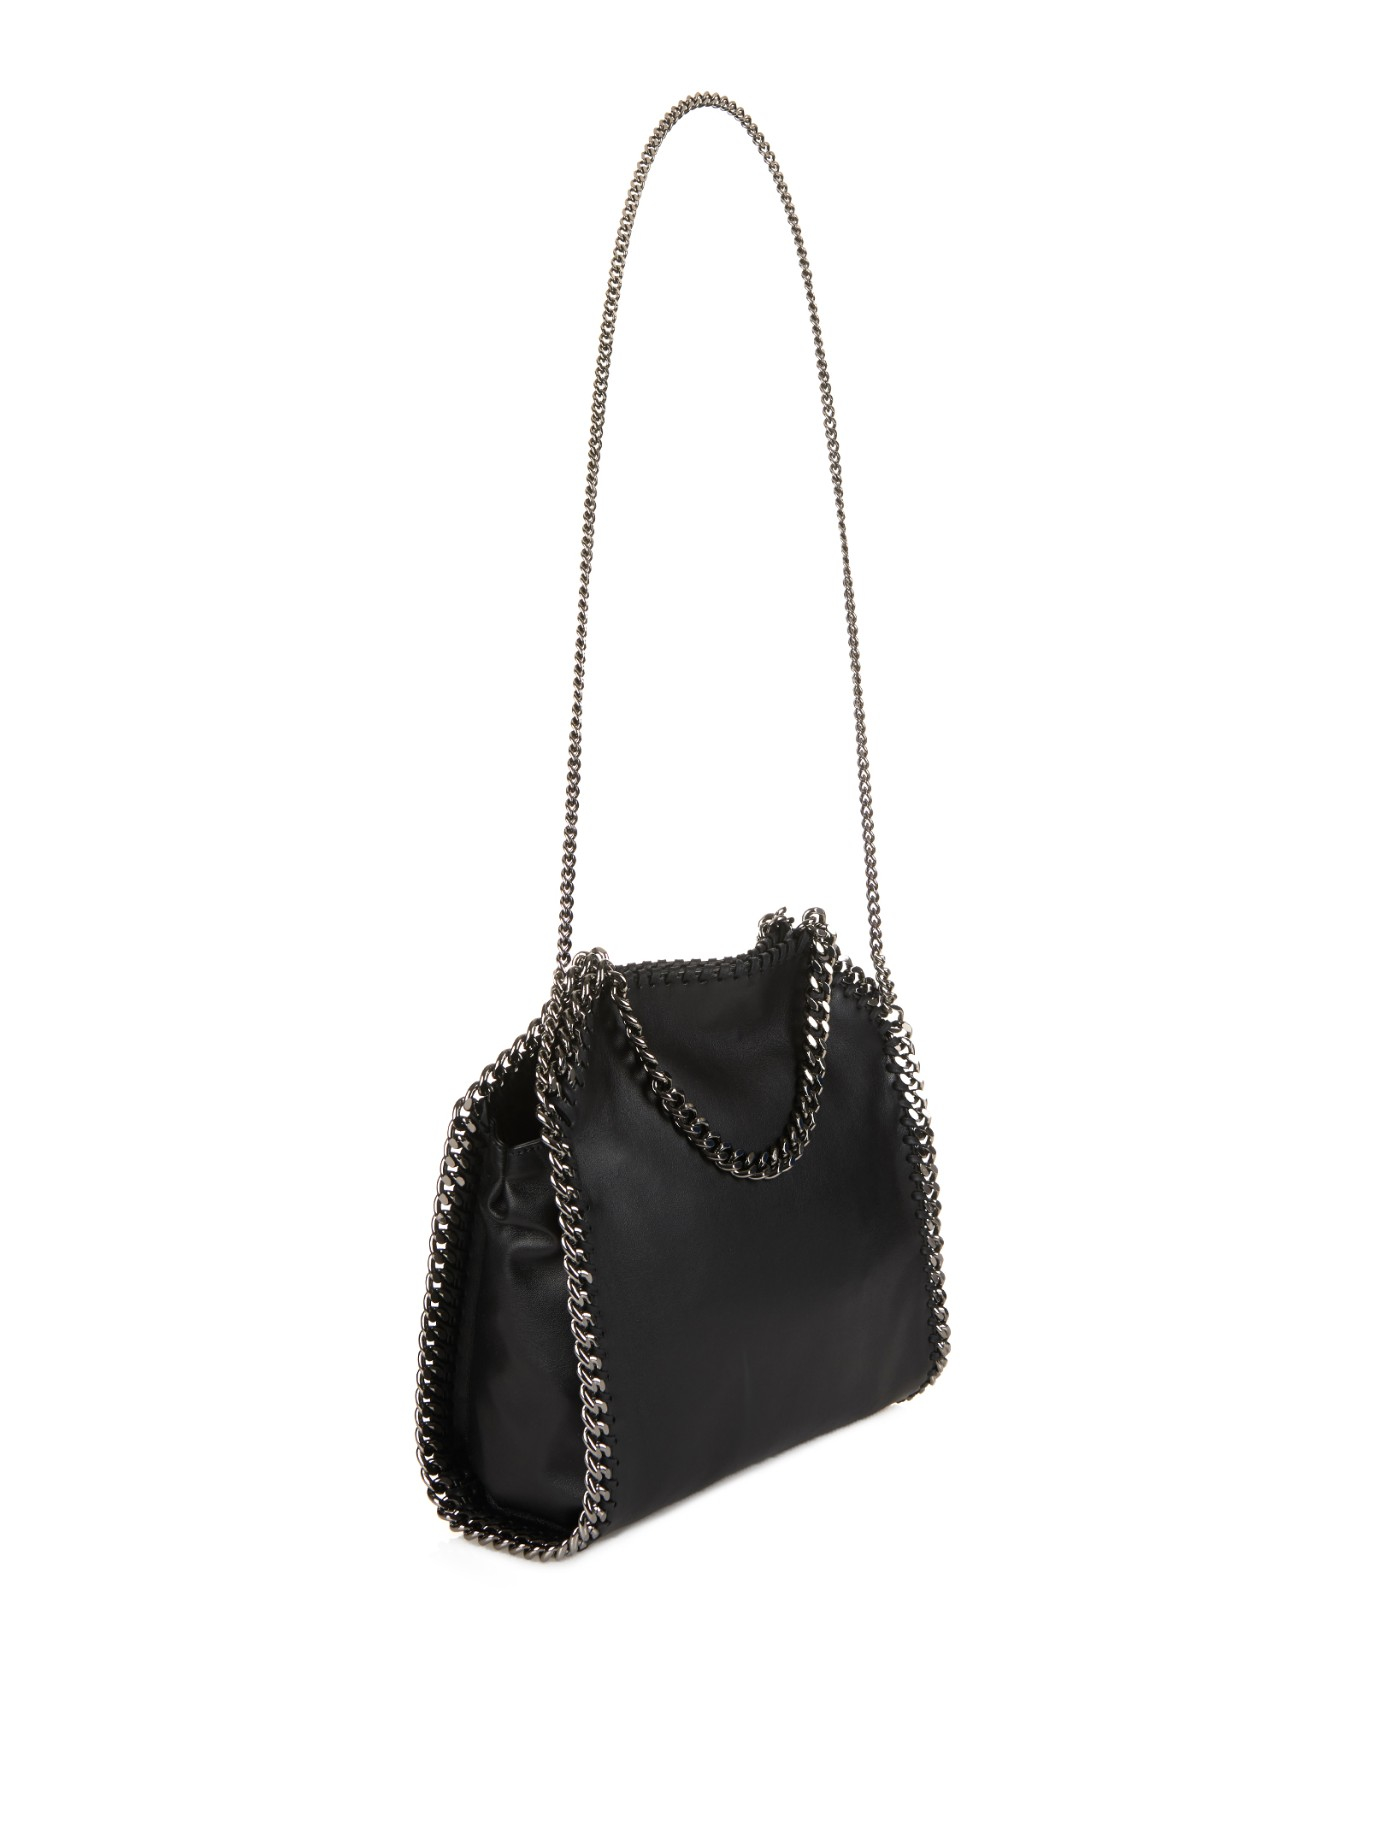 f6c009f8a3ac Gallery. Previously sold at  MATCHESFASHION.COM · Women s Stella Mccartney  Falabella Women s Cross Body Bags ...